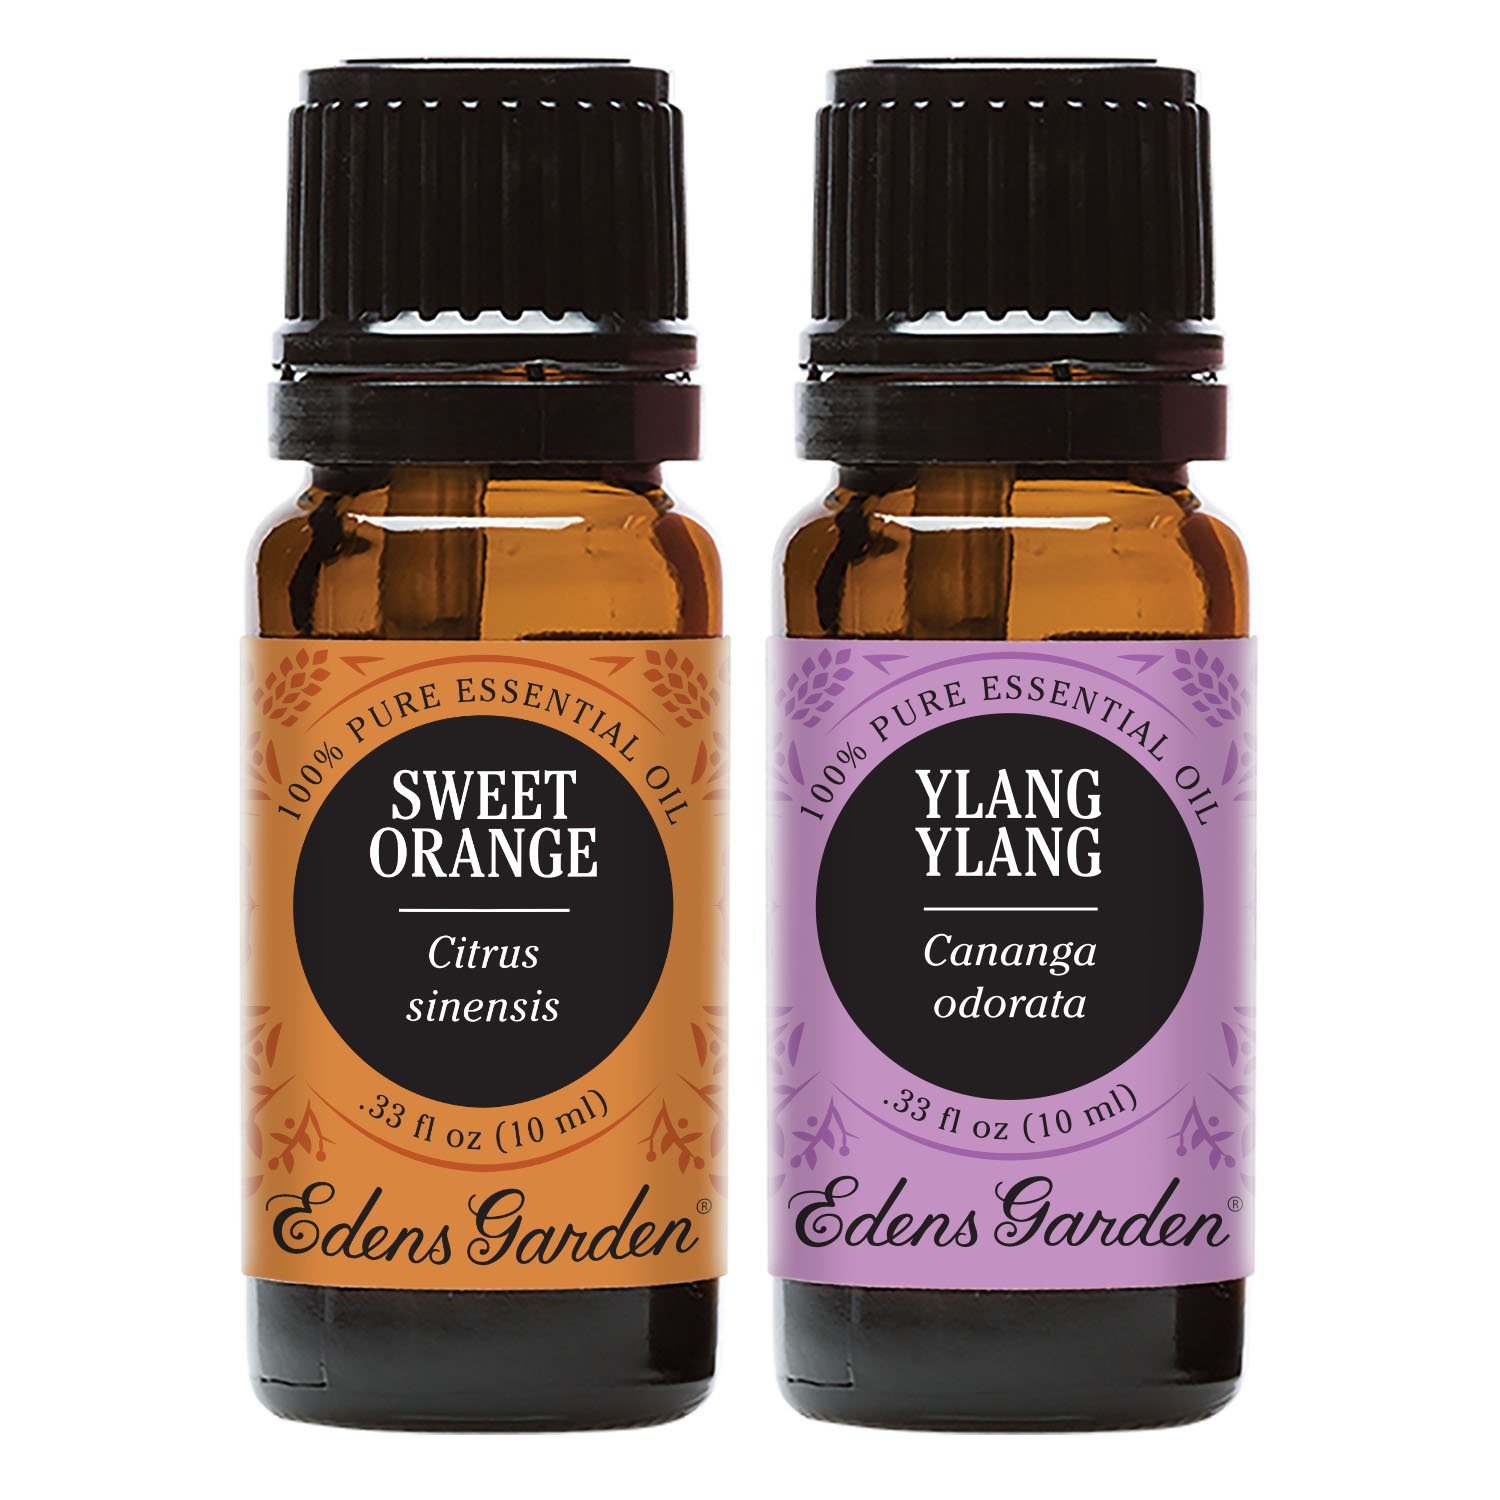 Edens Garden Sweet Orange & Ylang Ylang Essential Oil Set, Best 100% Pure Aromatherapy Starter Kit (For Diffuser & Therapeutic Use), 10 ml